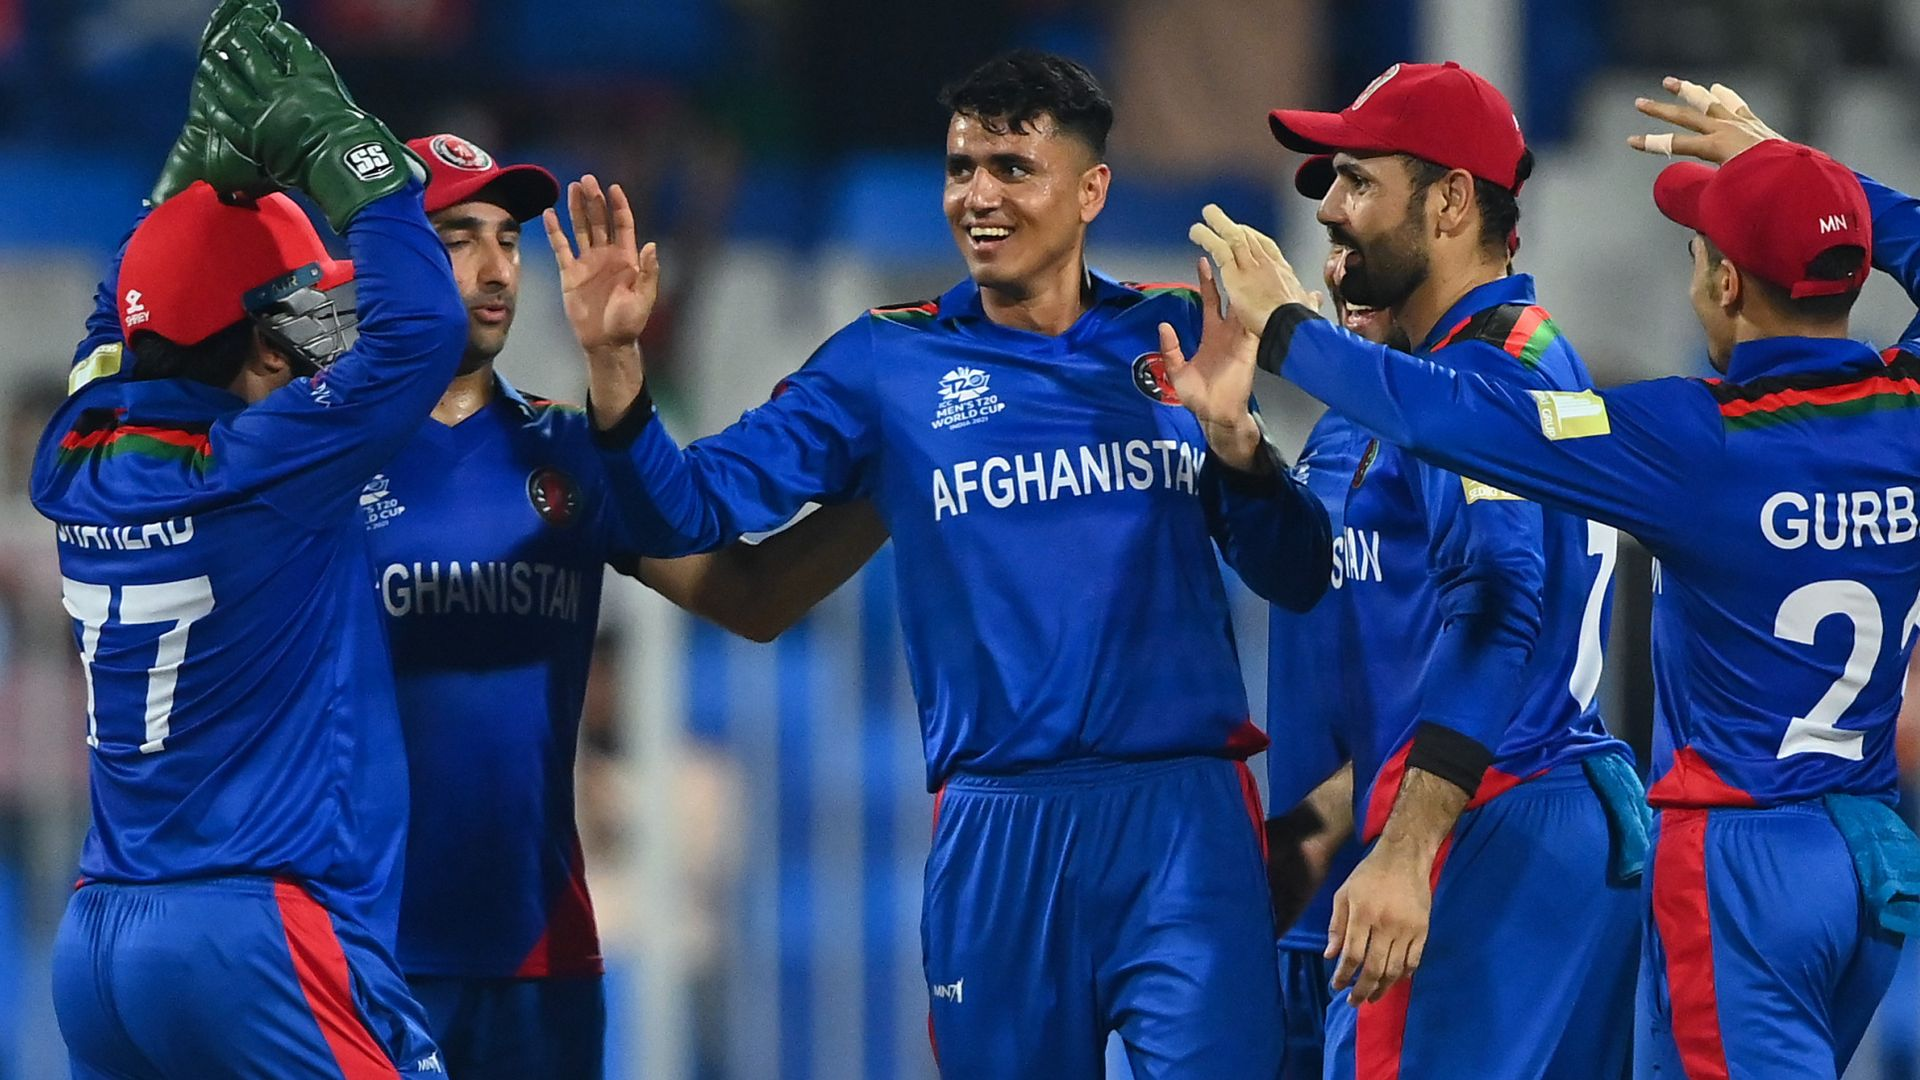 Scotland rolled for 60 in 130-run defeat to inspired Afghanistan